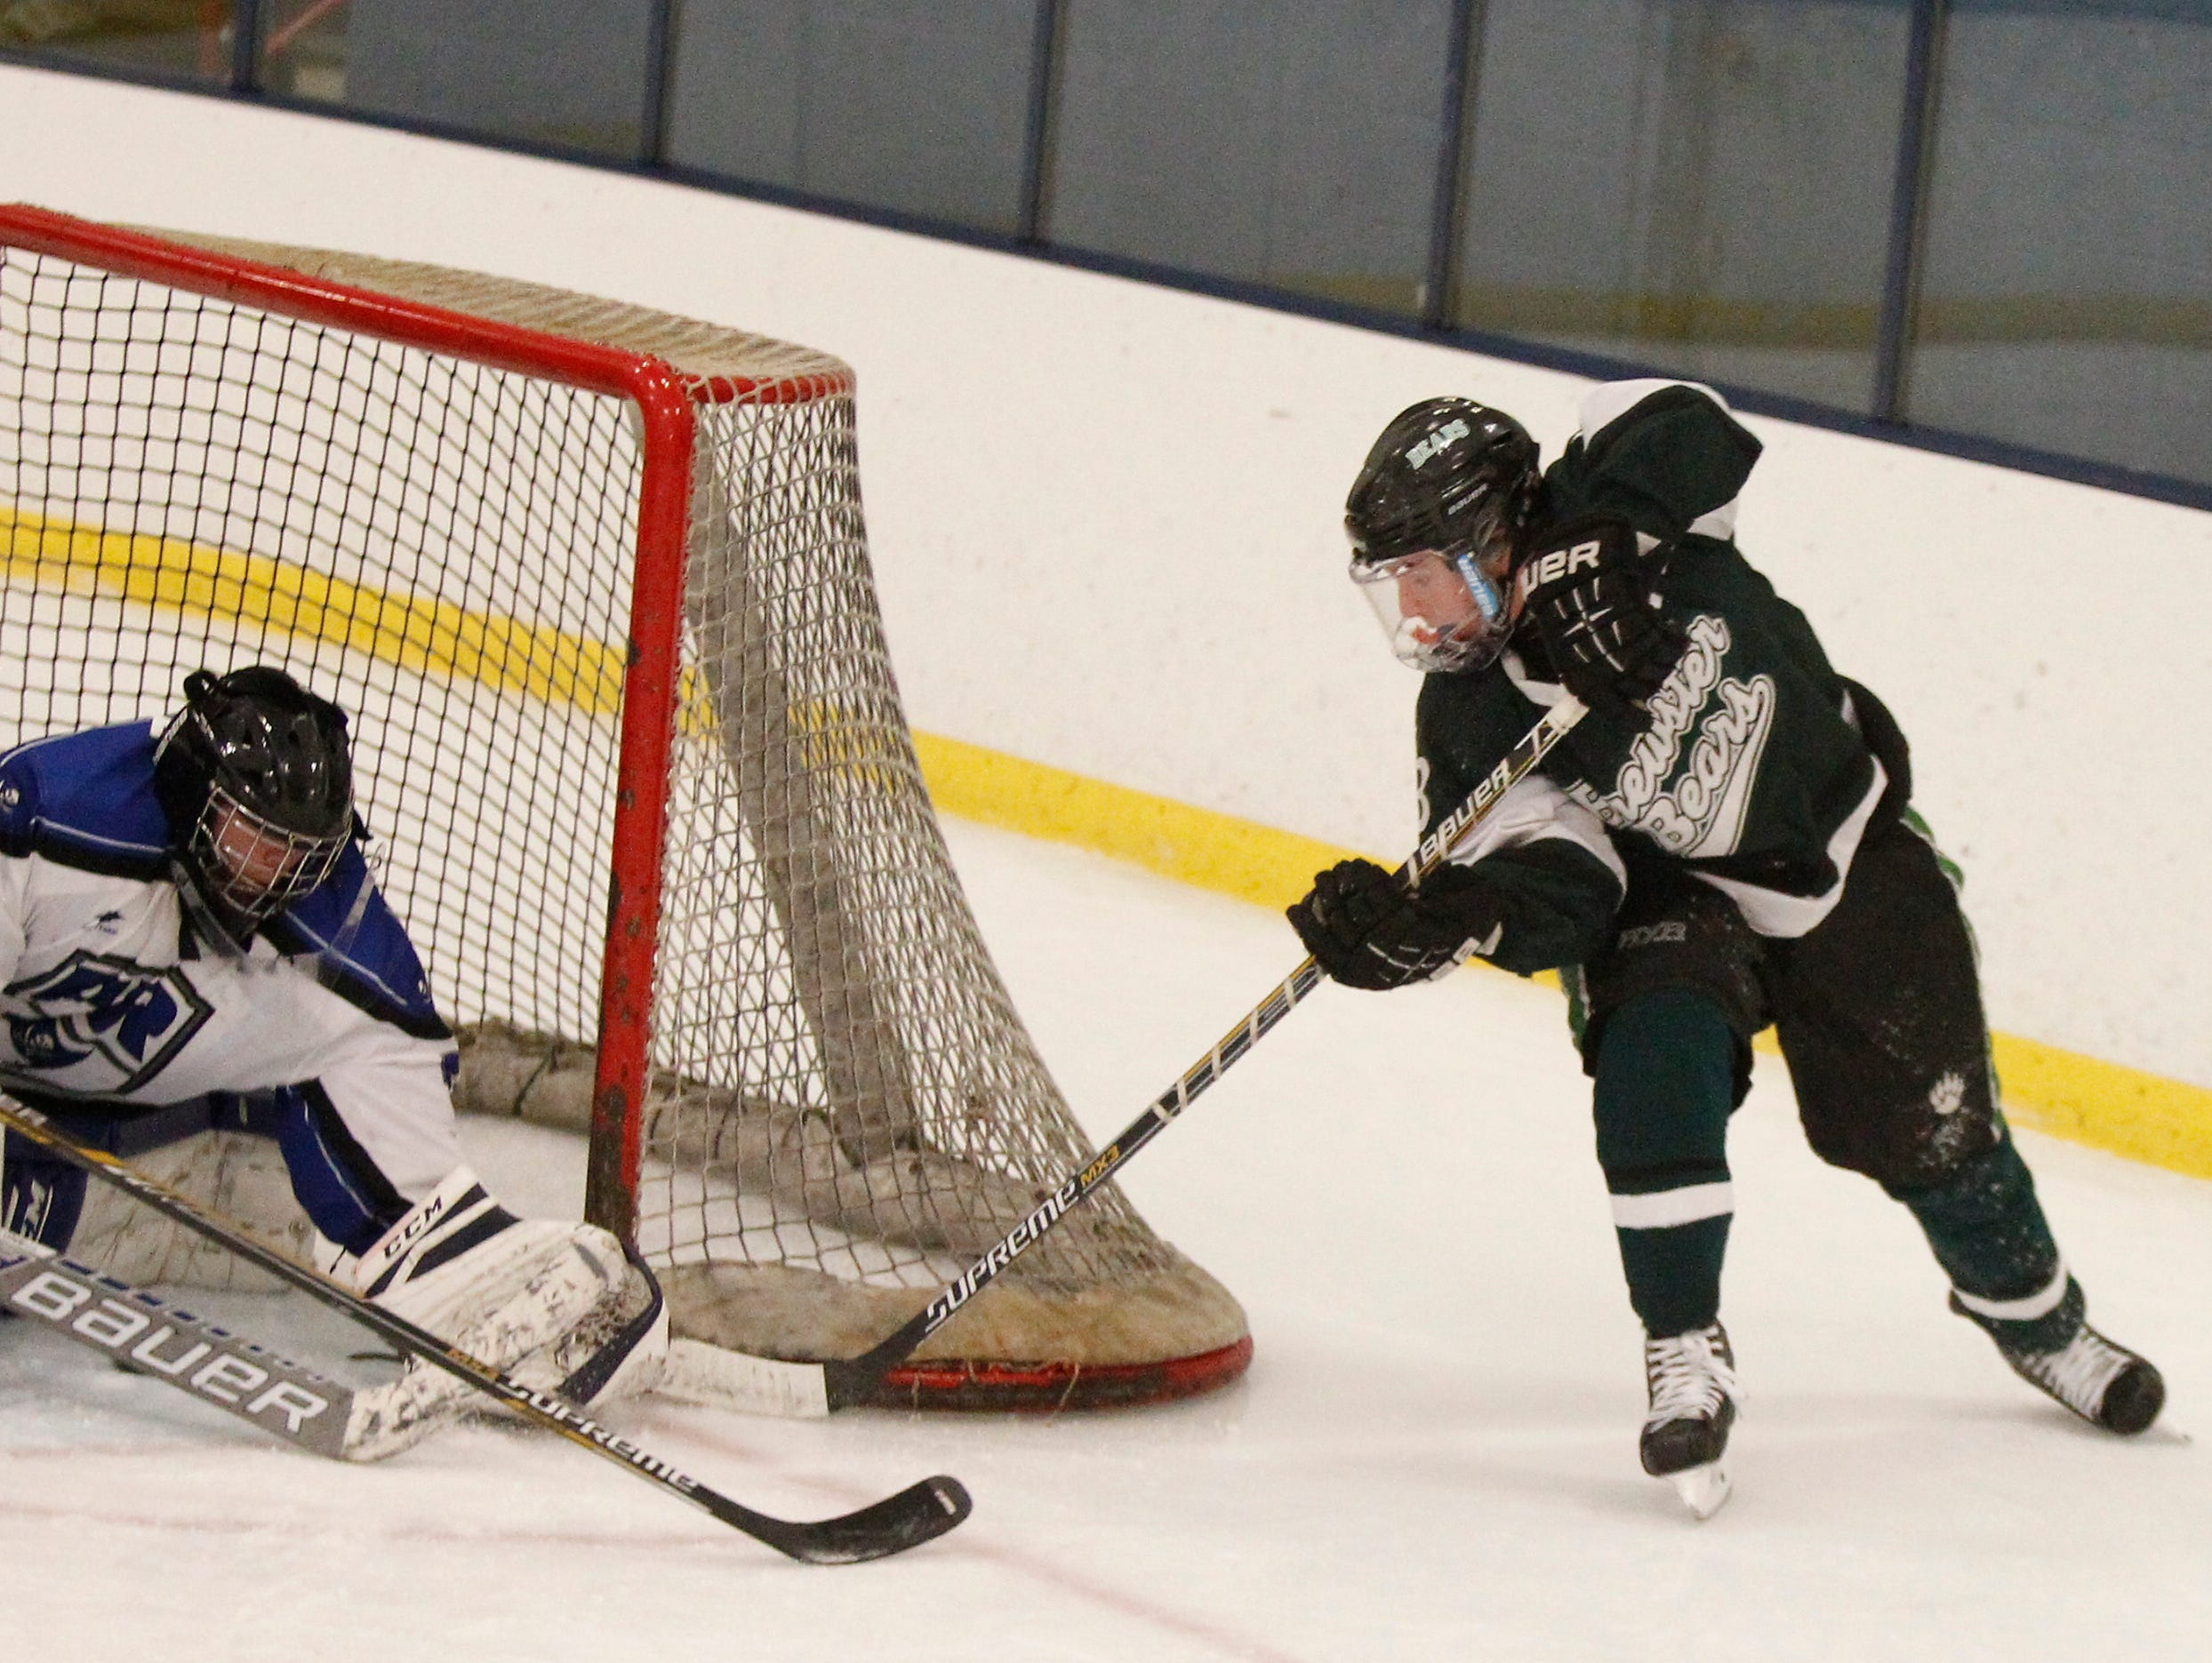 Brewster's Jason McNamara (12) gets in a wraparound shot on Pearl River goalie Darragh Keetley (32) during their 4-4 overtime tie game at Sport-O-Rama in Monsey on Saturday, Jan. 9, 2016.